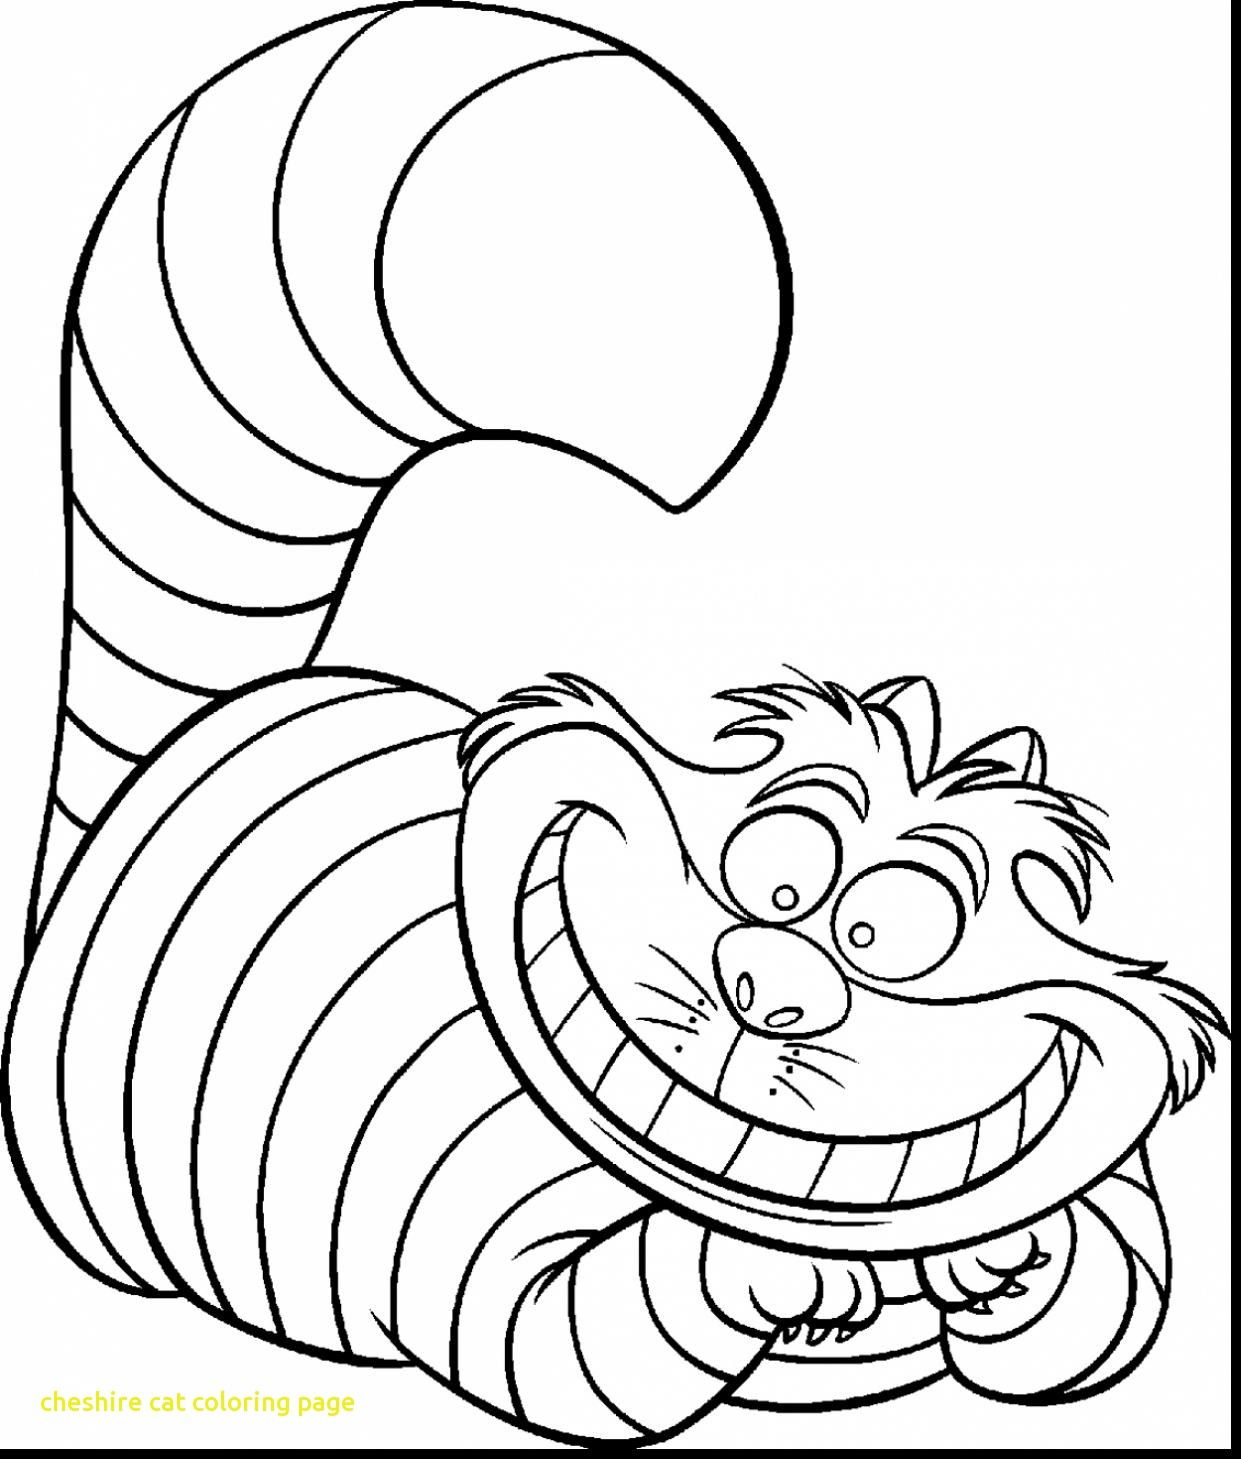 Cheshire Cat Coloring Page With Astounding Alice Wonderland ...